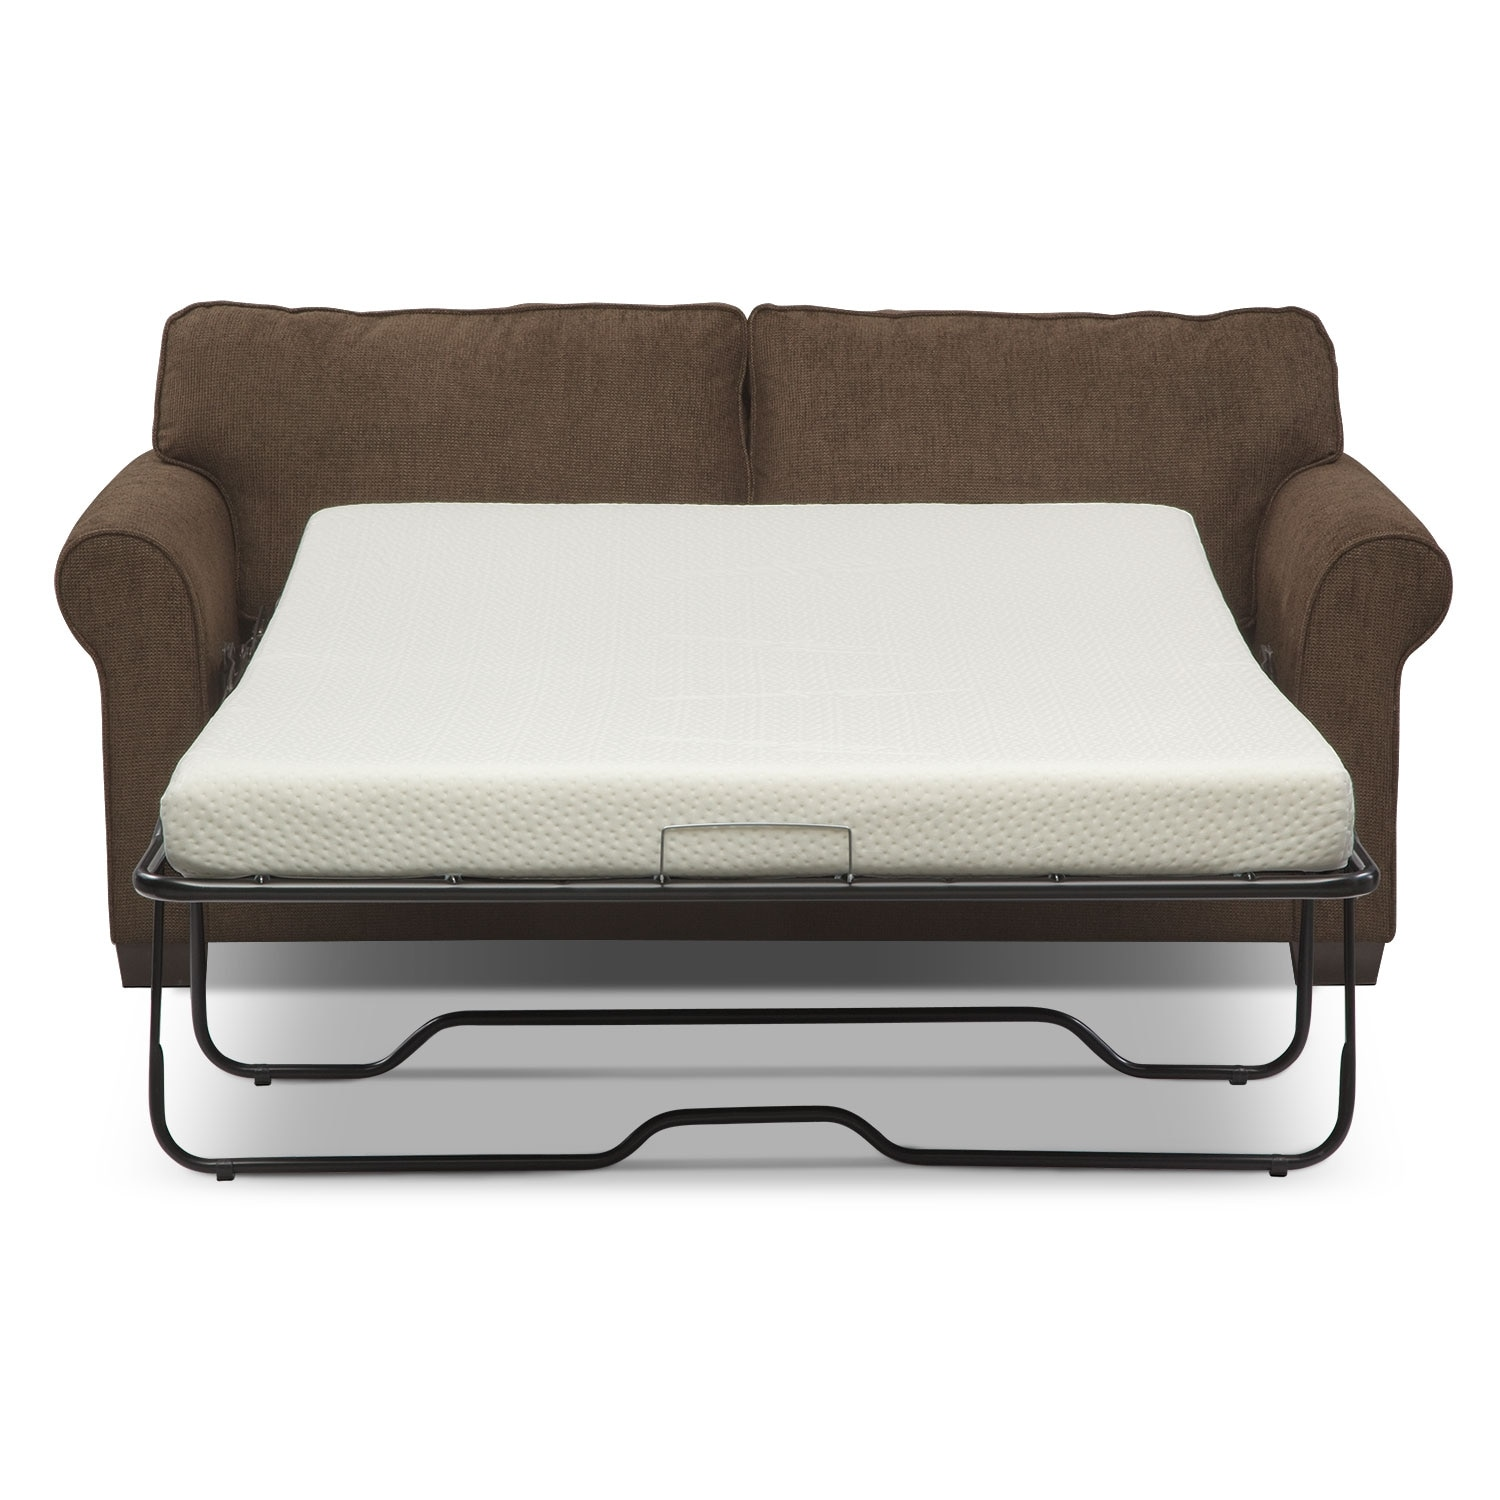 Fletcher Ii Full Memory Foam Sleeper Sofa Value City Furniture